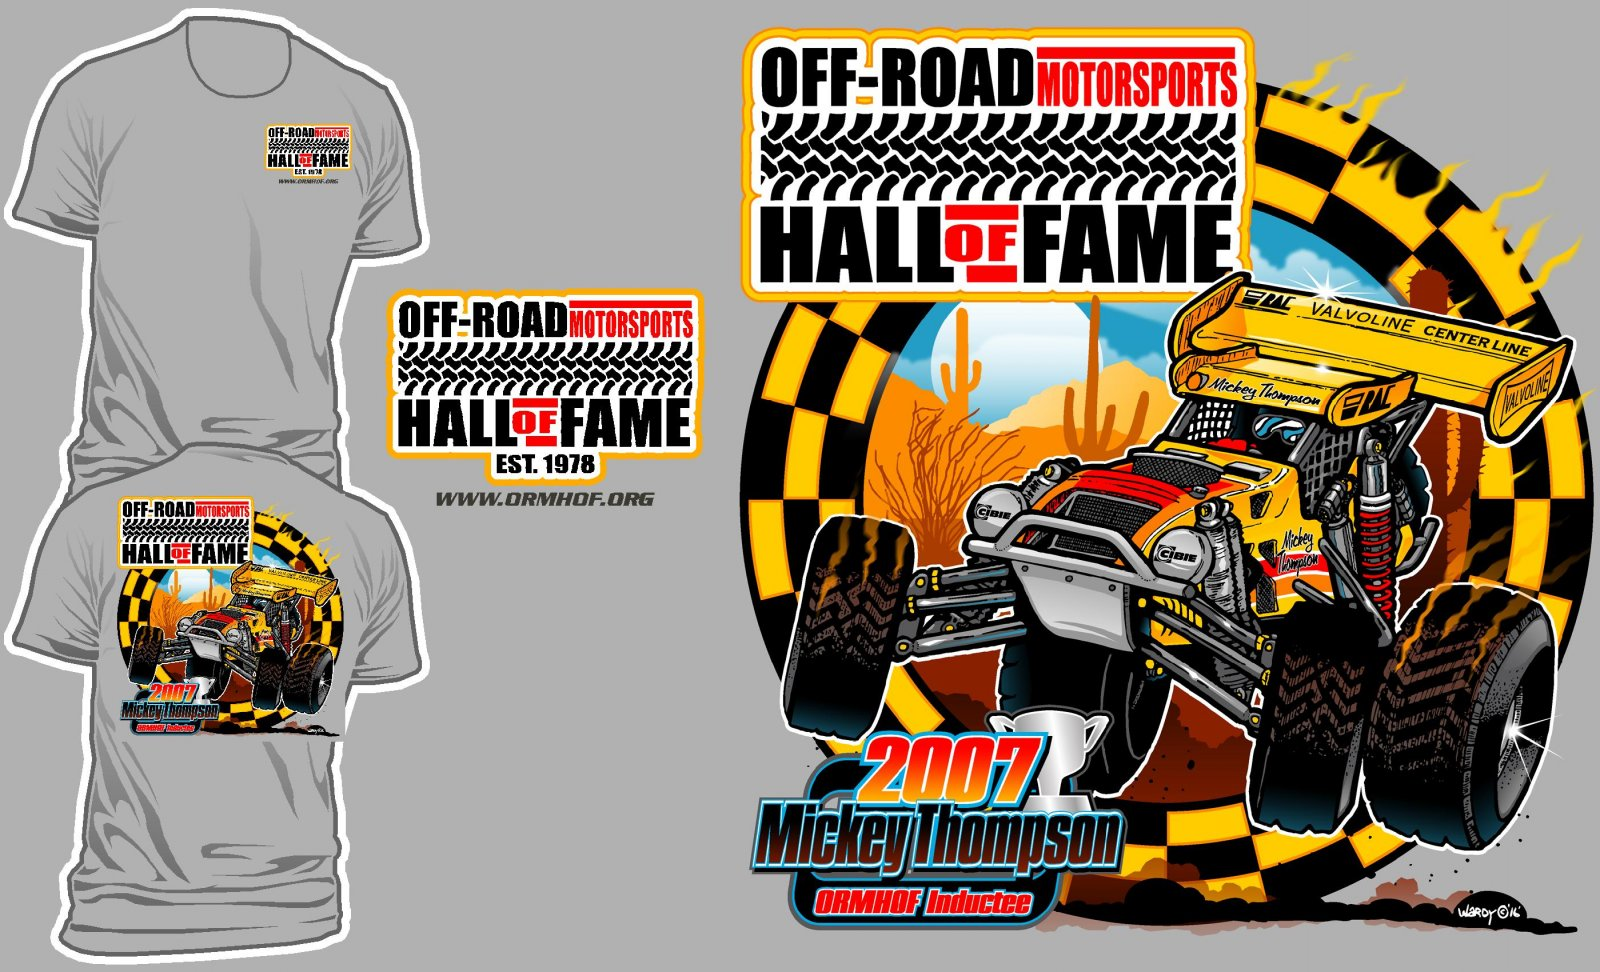 New ORMHOF t-shirt for a good cause! | race-deZert